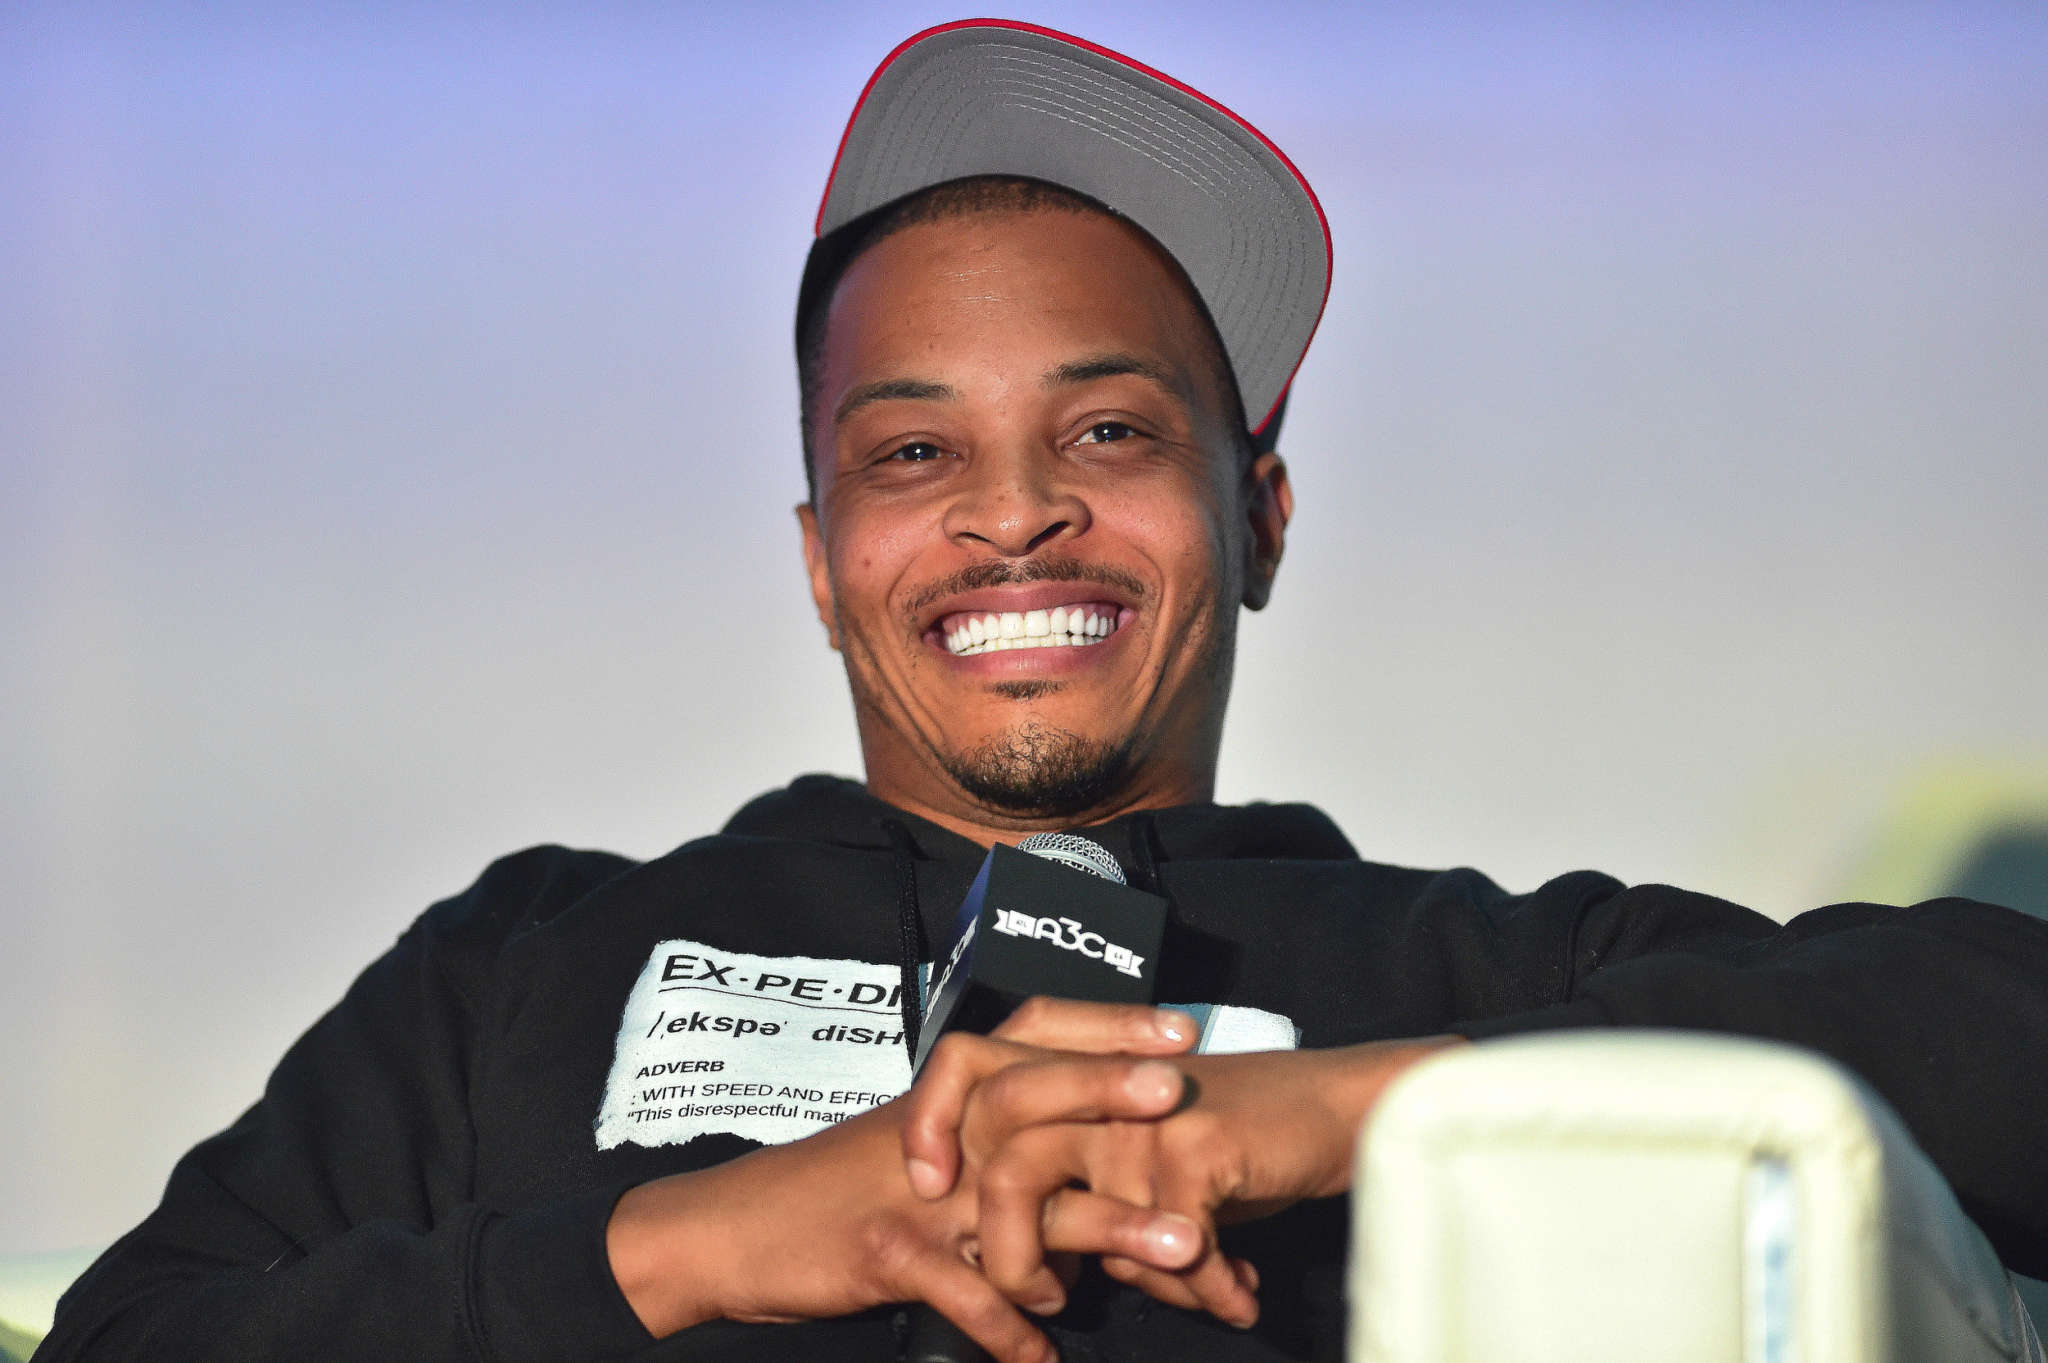 T.I. Gushes Over Amber Ruffin – Check Out The Video He Shared